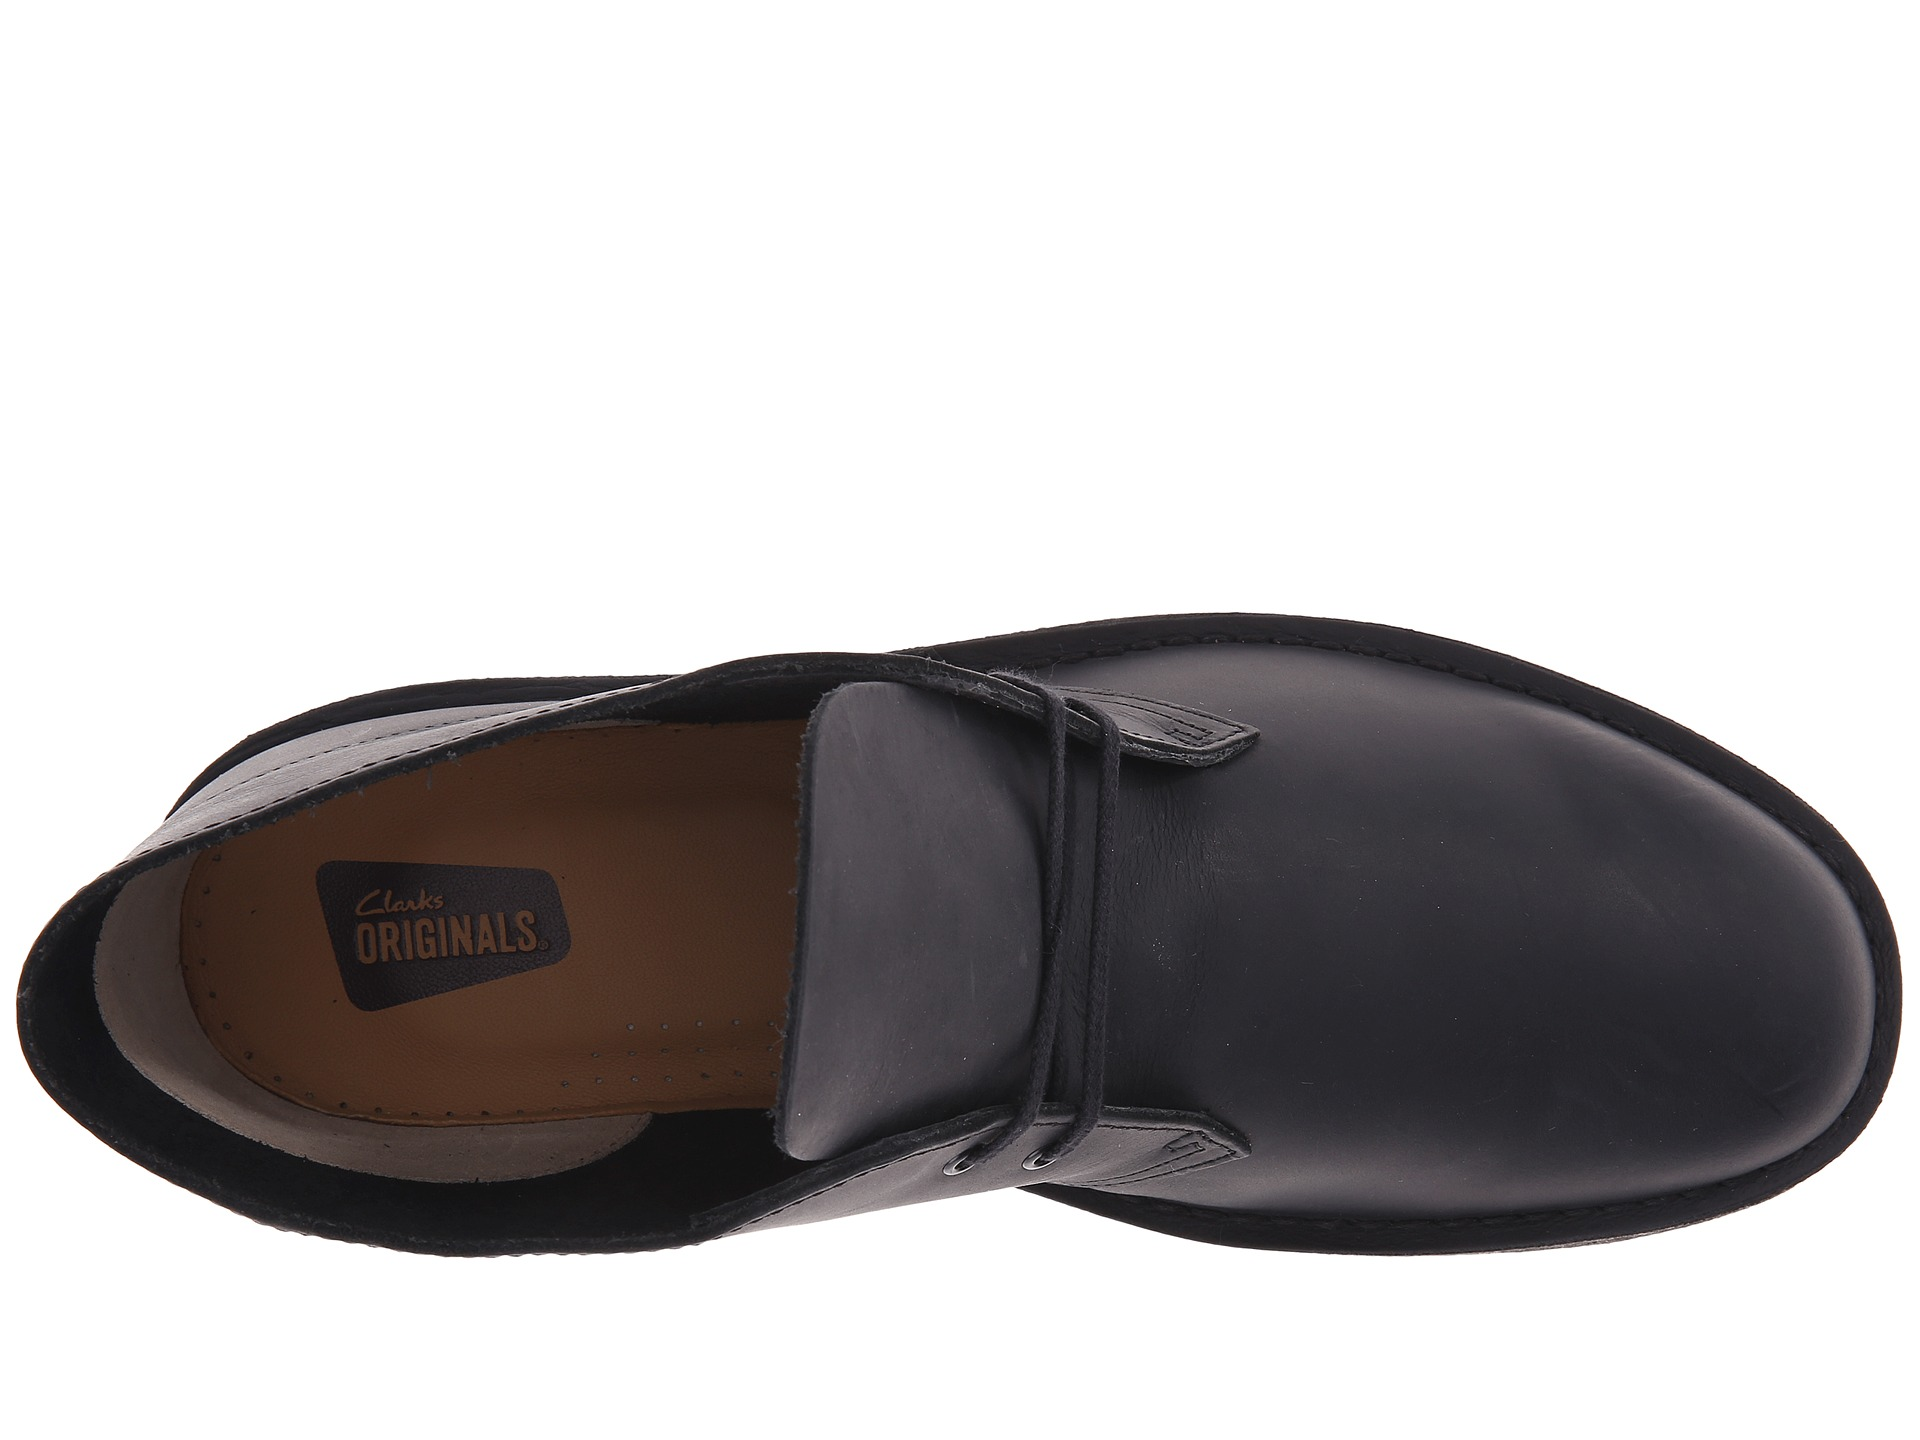 clarks sandals for at zappos innovaide